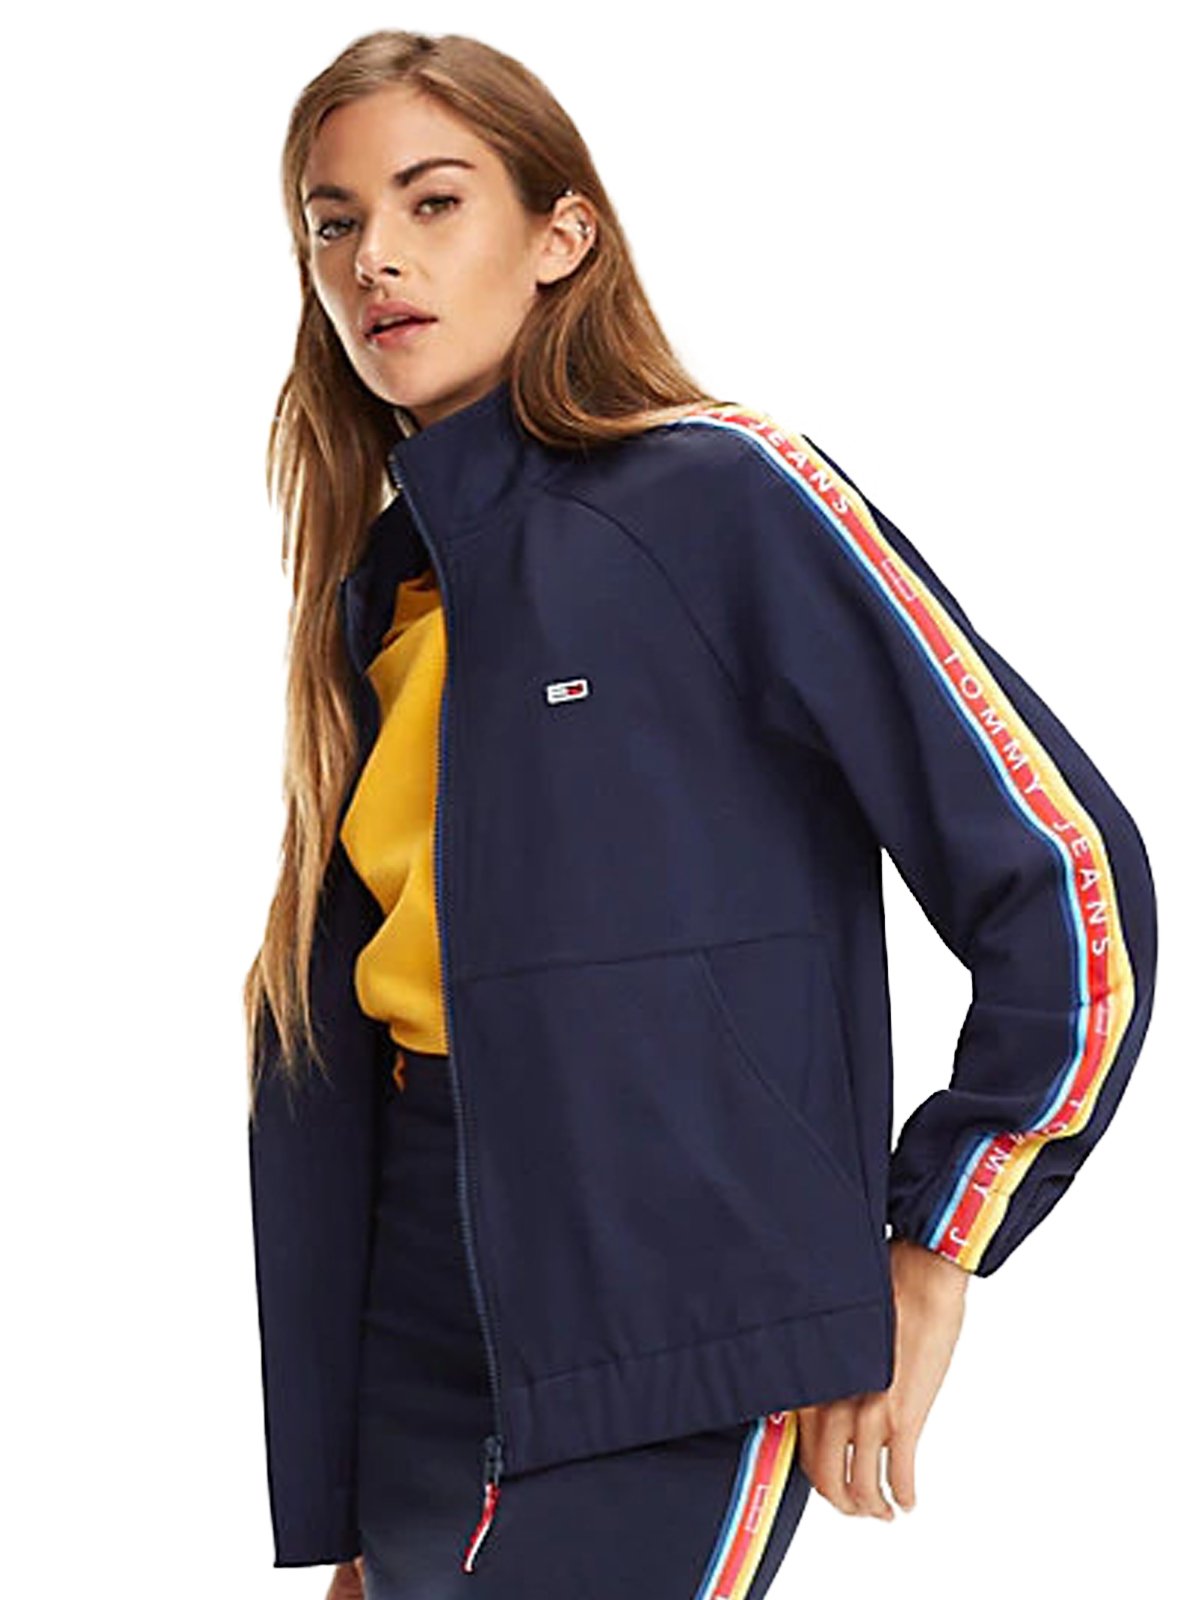 outlet store 2e78c e54bc TOMMY HILFIGER Giacca Sportiva